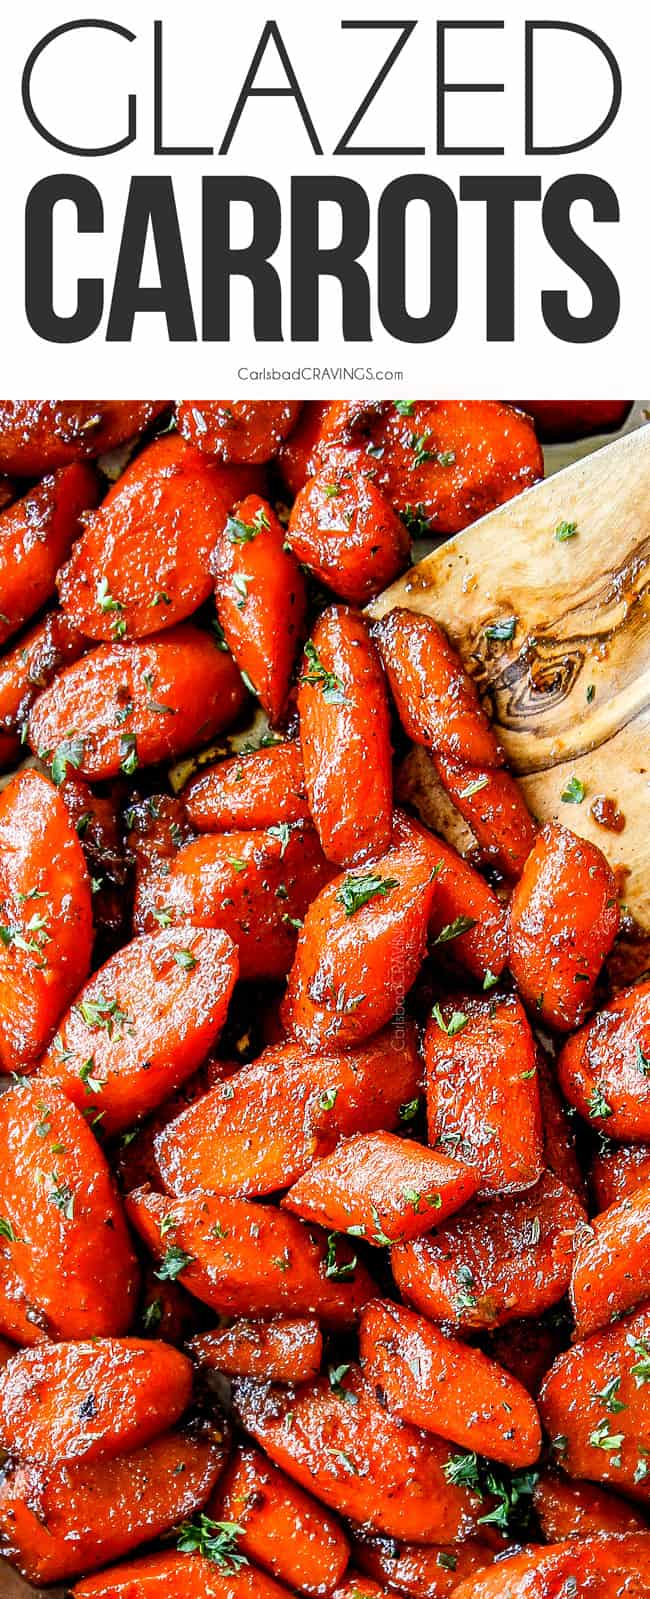 candied carrots (Glazed Carrots) with a wooden spoon